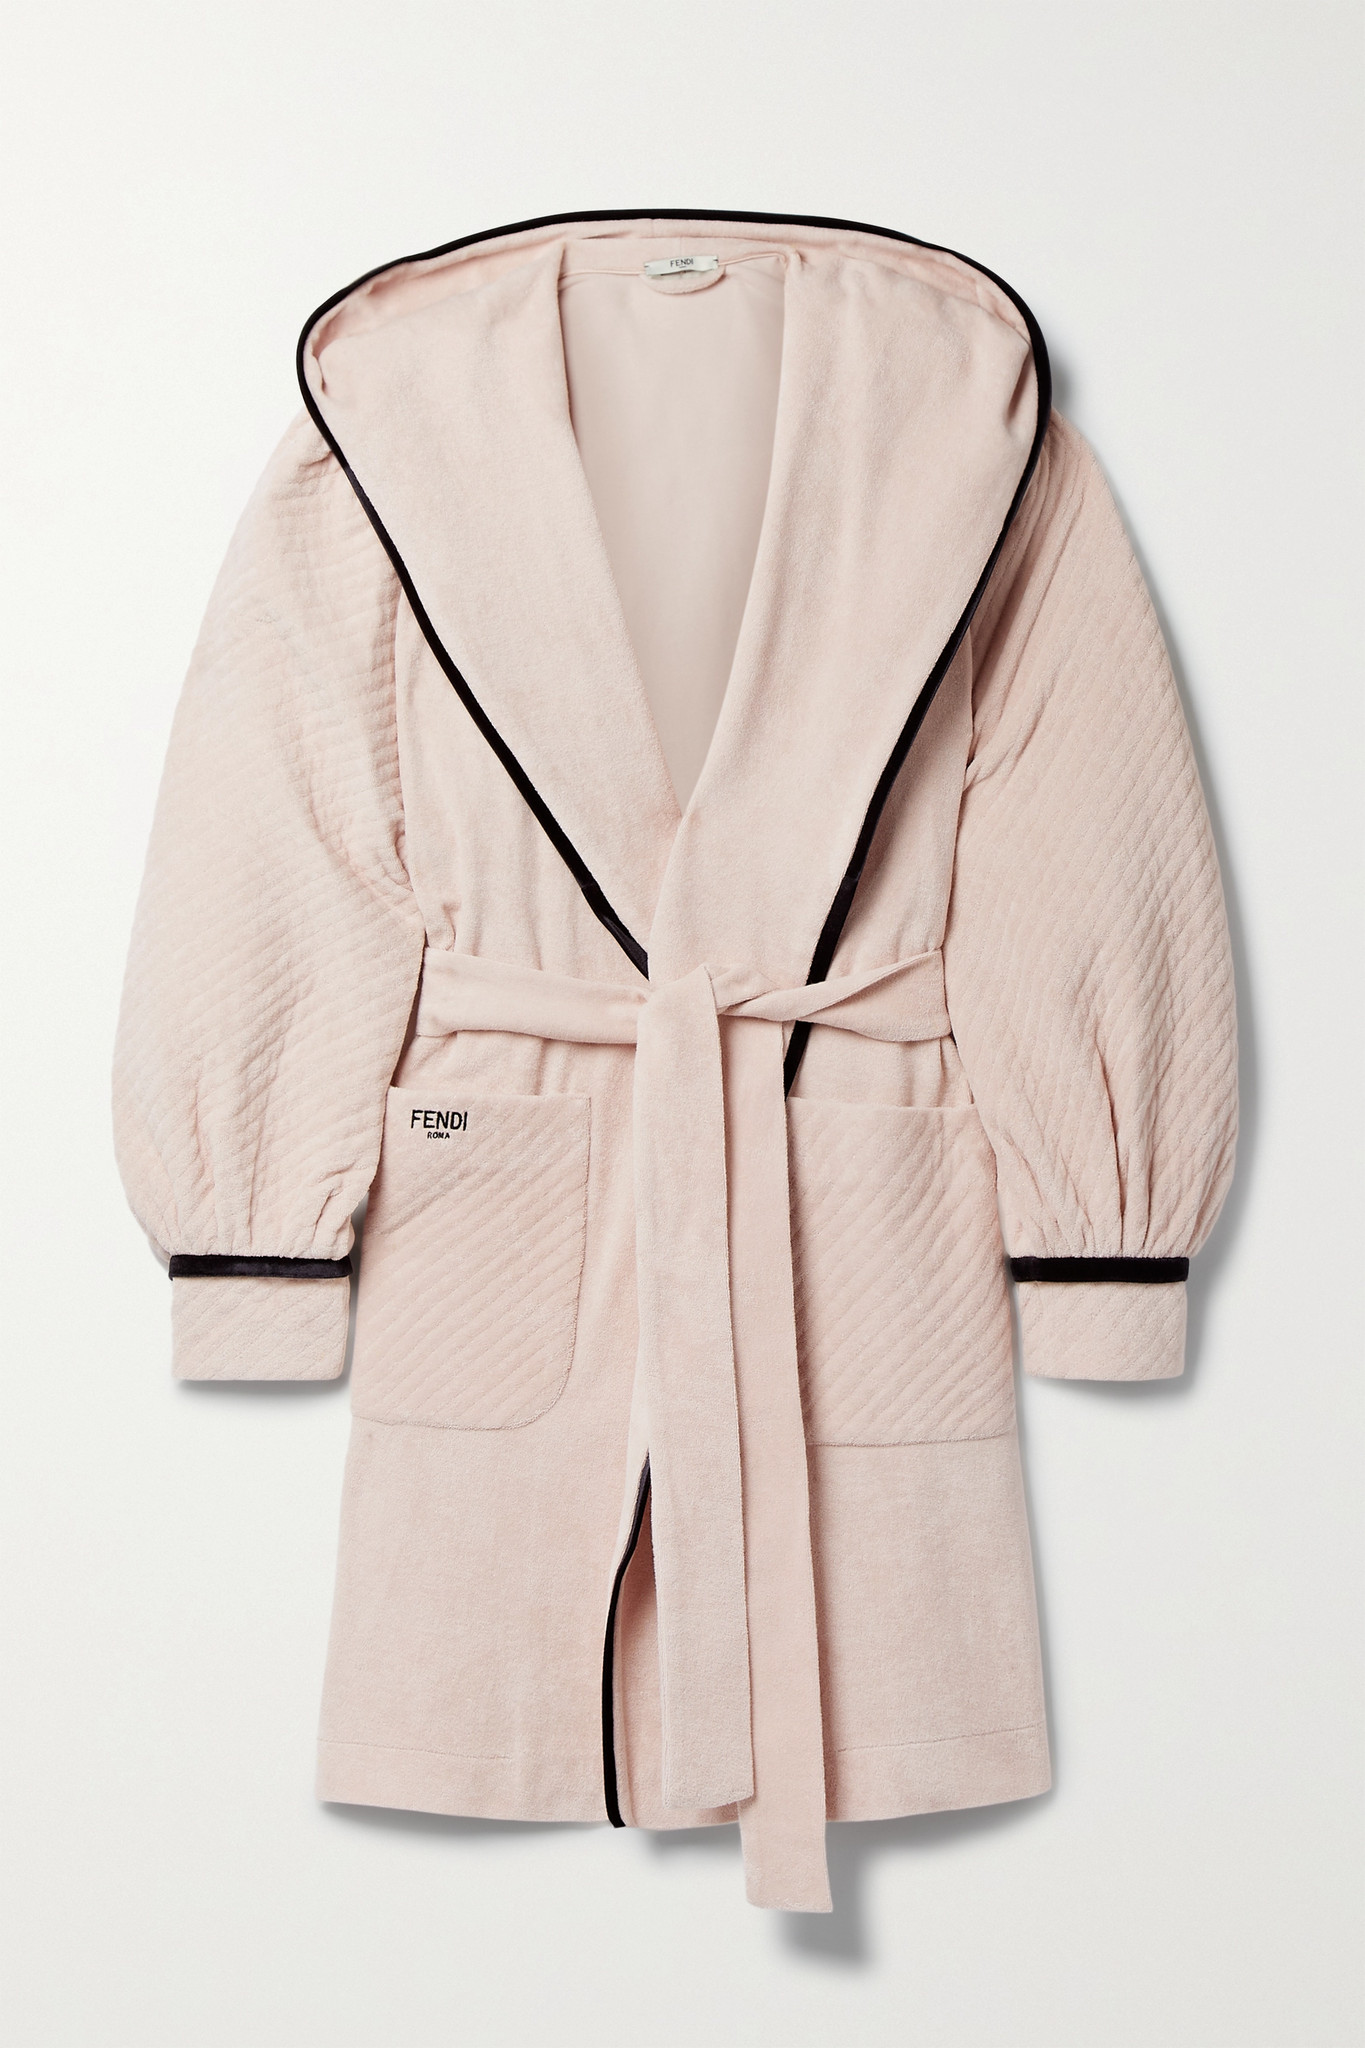 FENDI - Hooded Belted Velour-trimmed Cotton-terry Robe - Pink - IT44